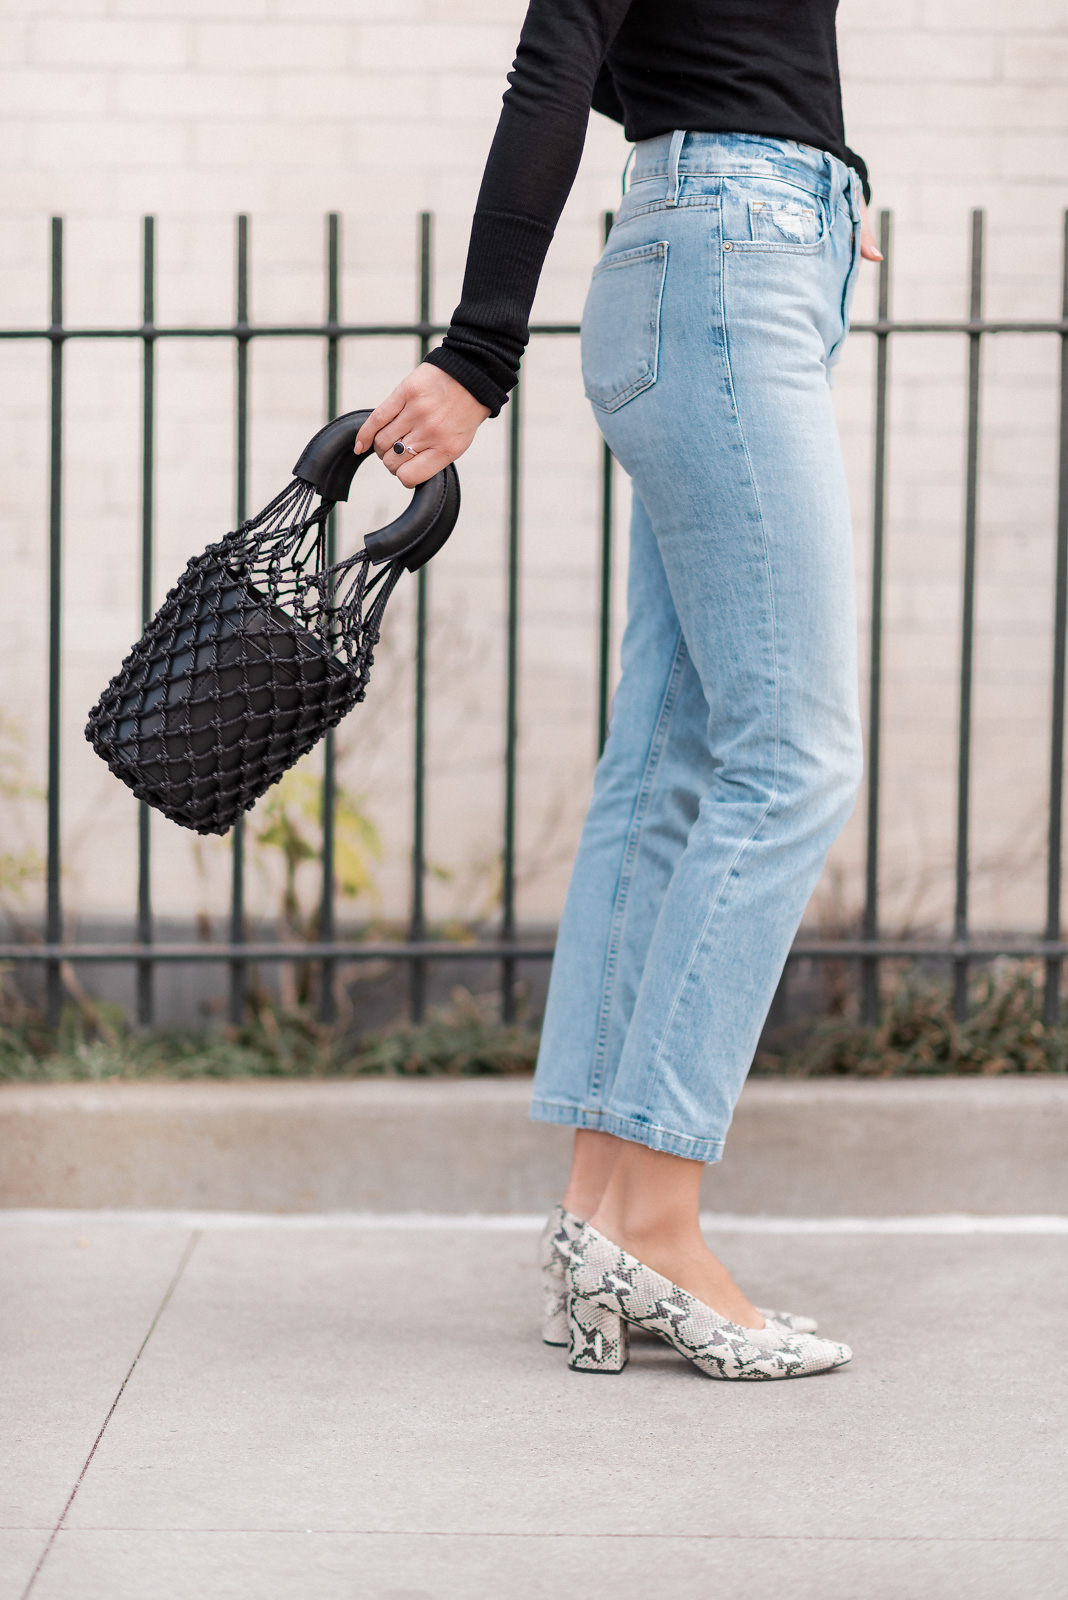 Laura Behnke The Life Actually Company Jeans Turtleneck Simple Style